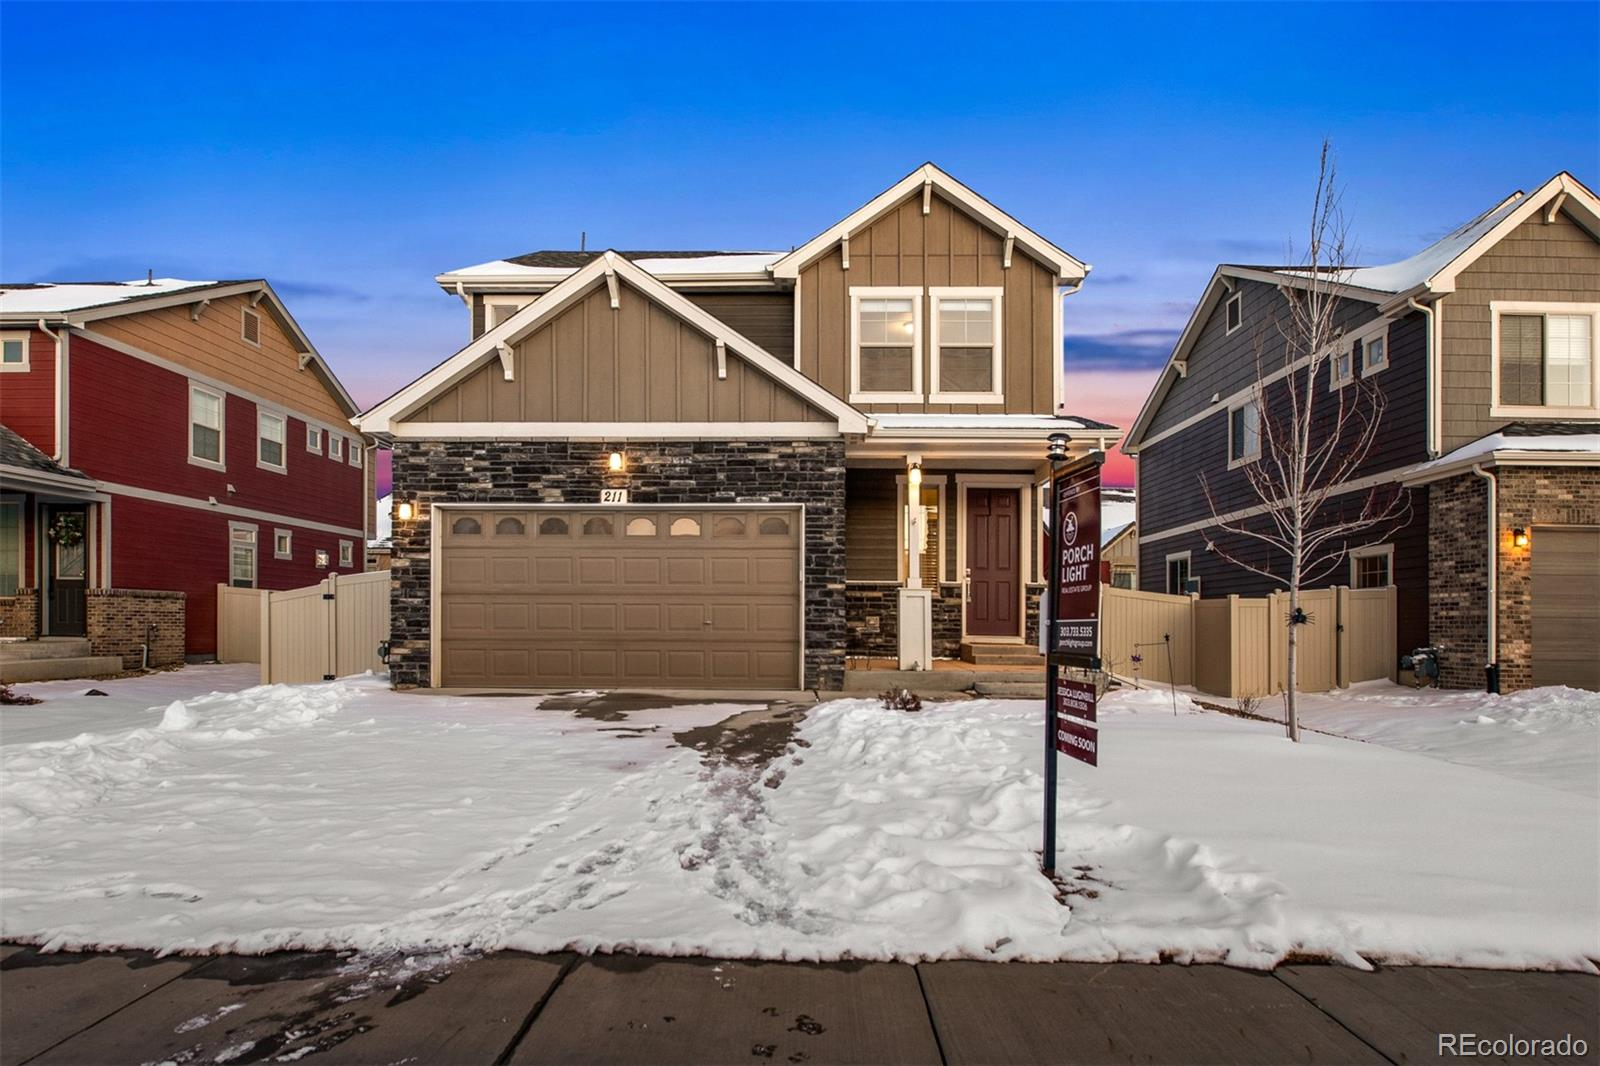 MLS# 6282621 - 3 - 211 Pear Lake Way, Erie, CO 80516